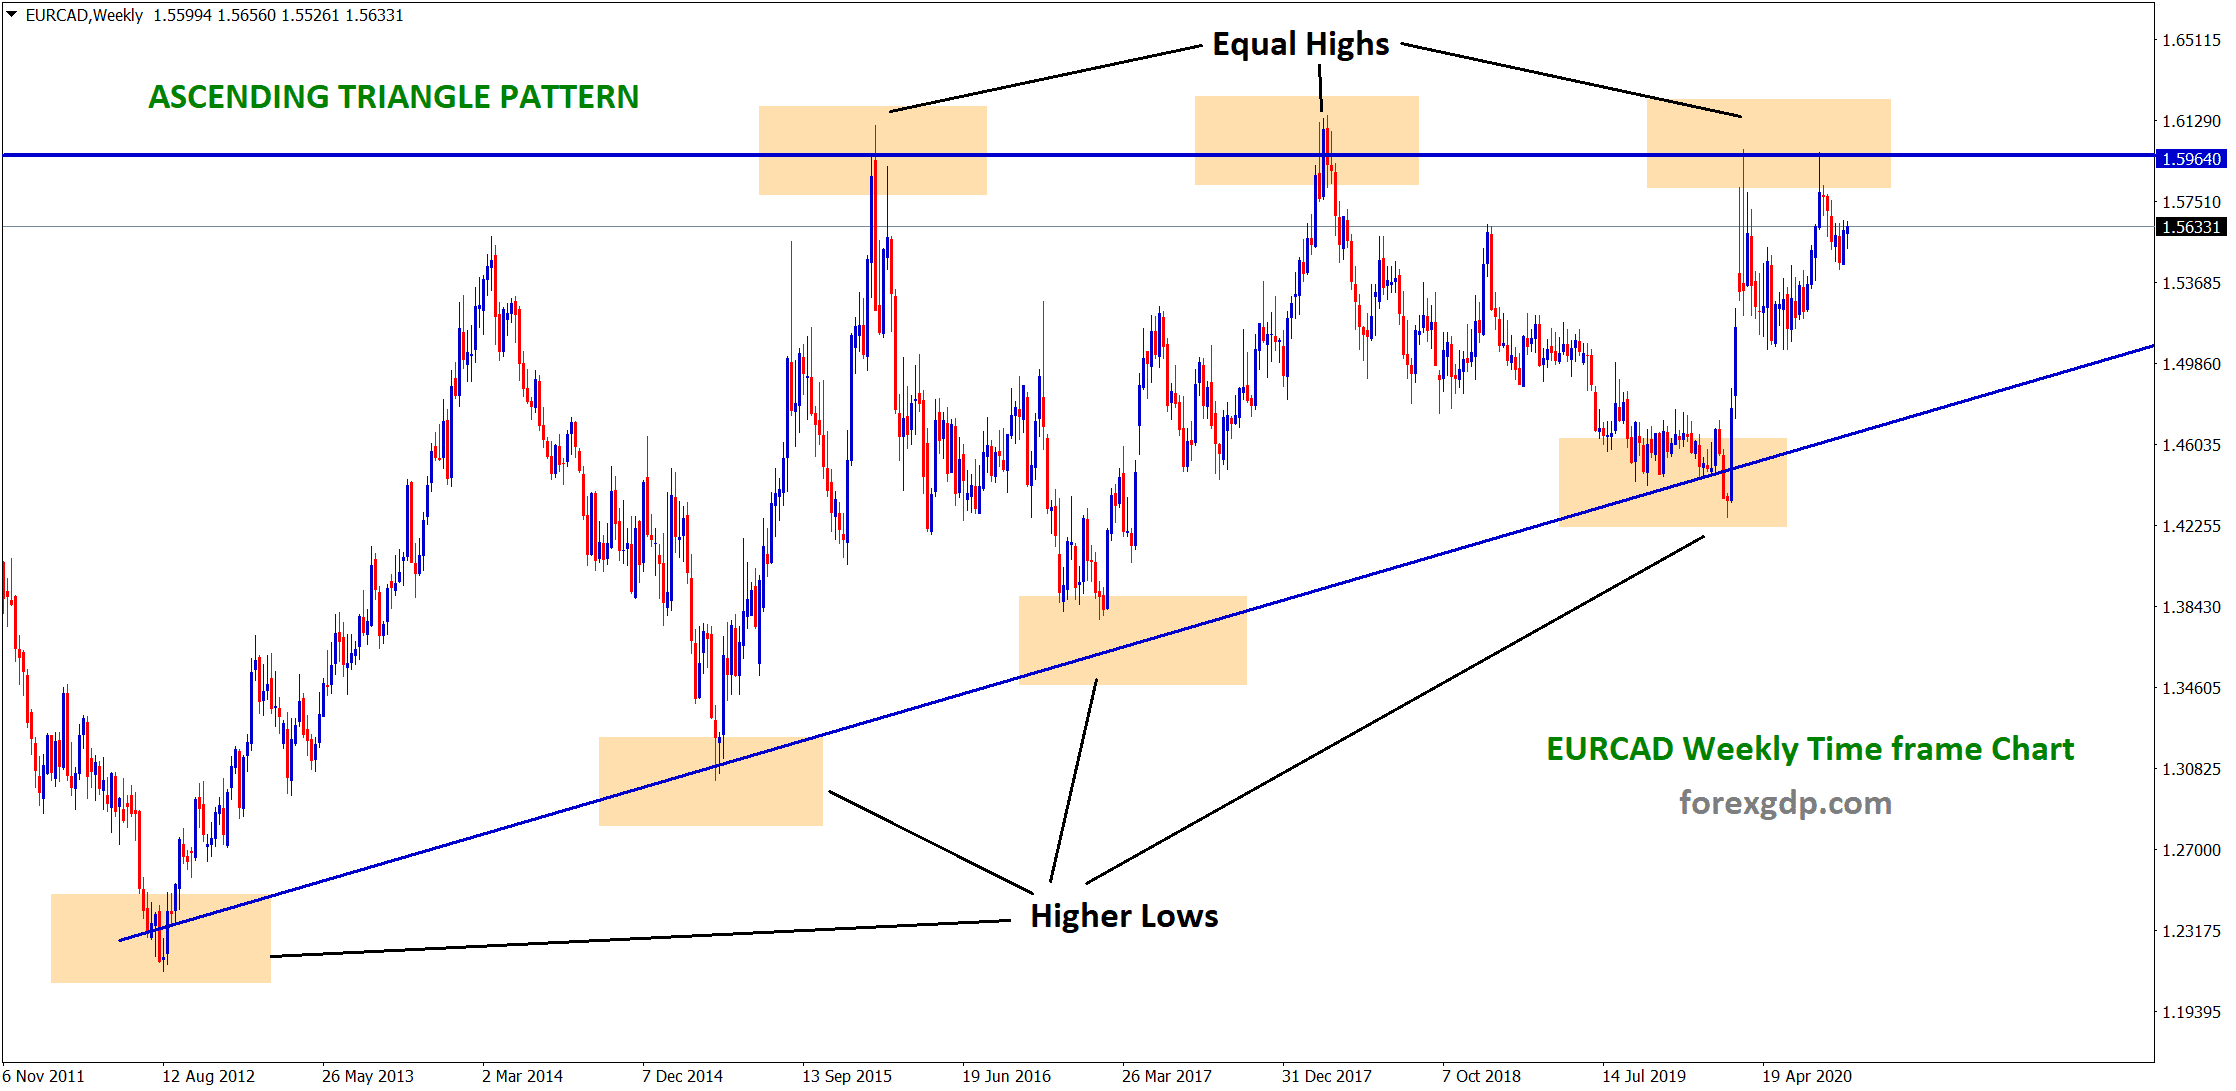 Ascending Triangle pattern in weekly time frame EURCAD chart